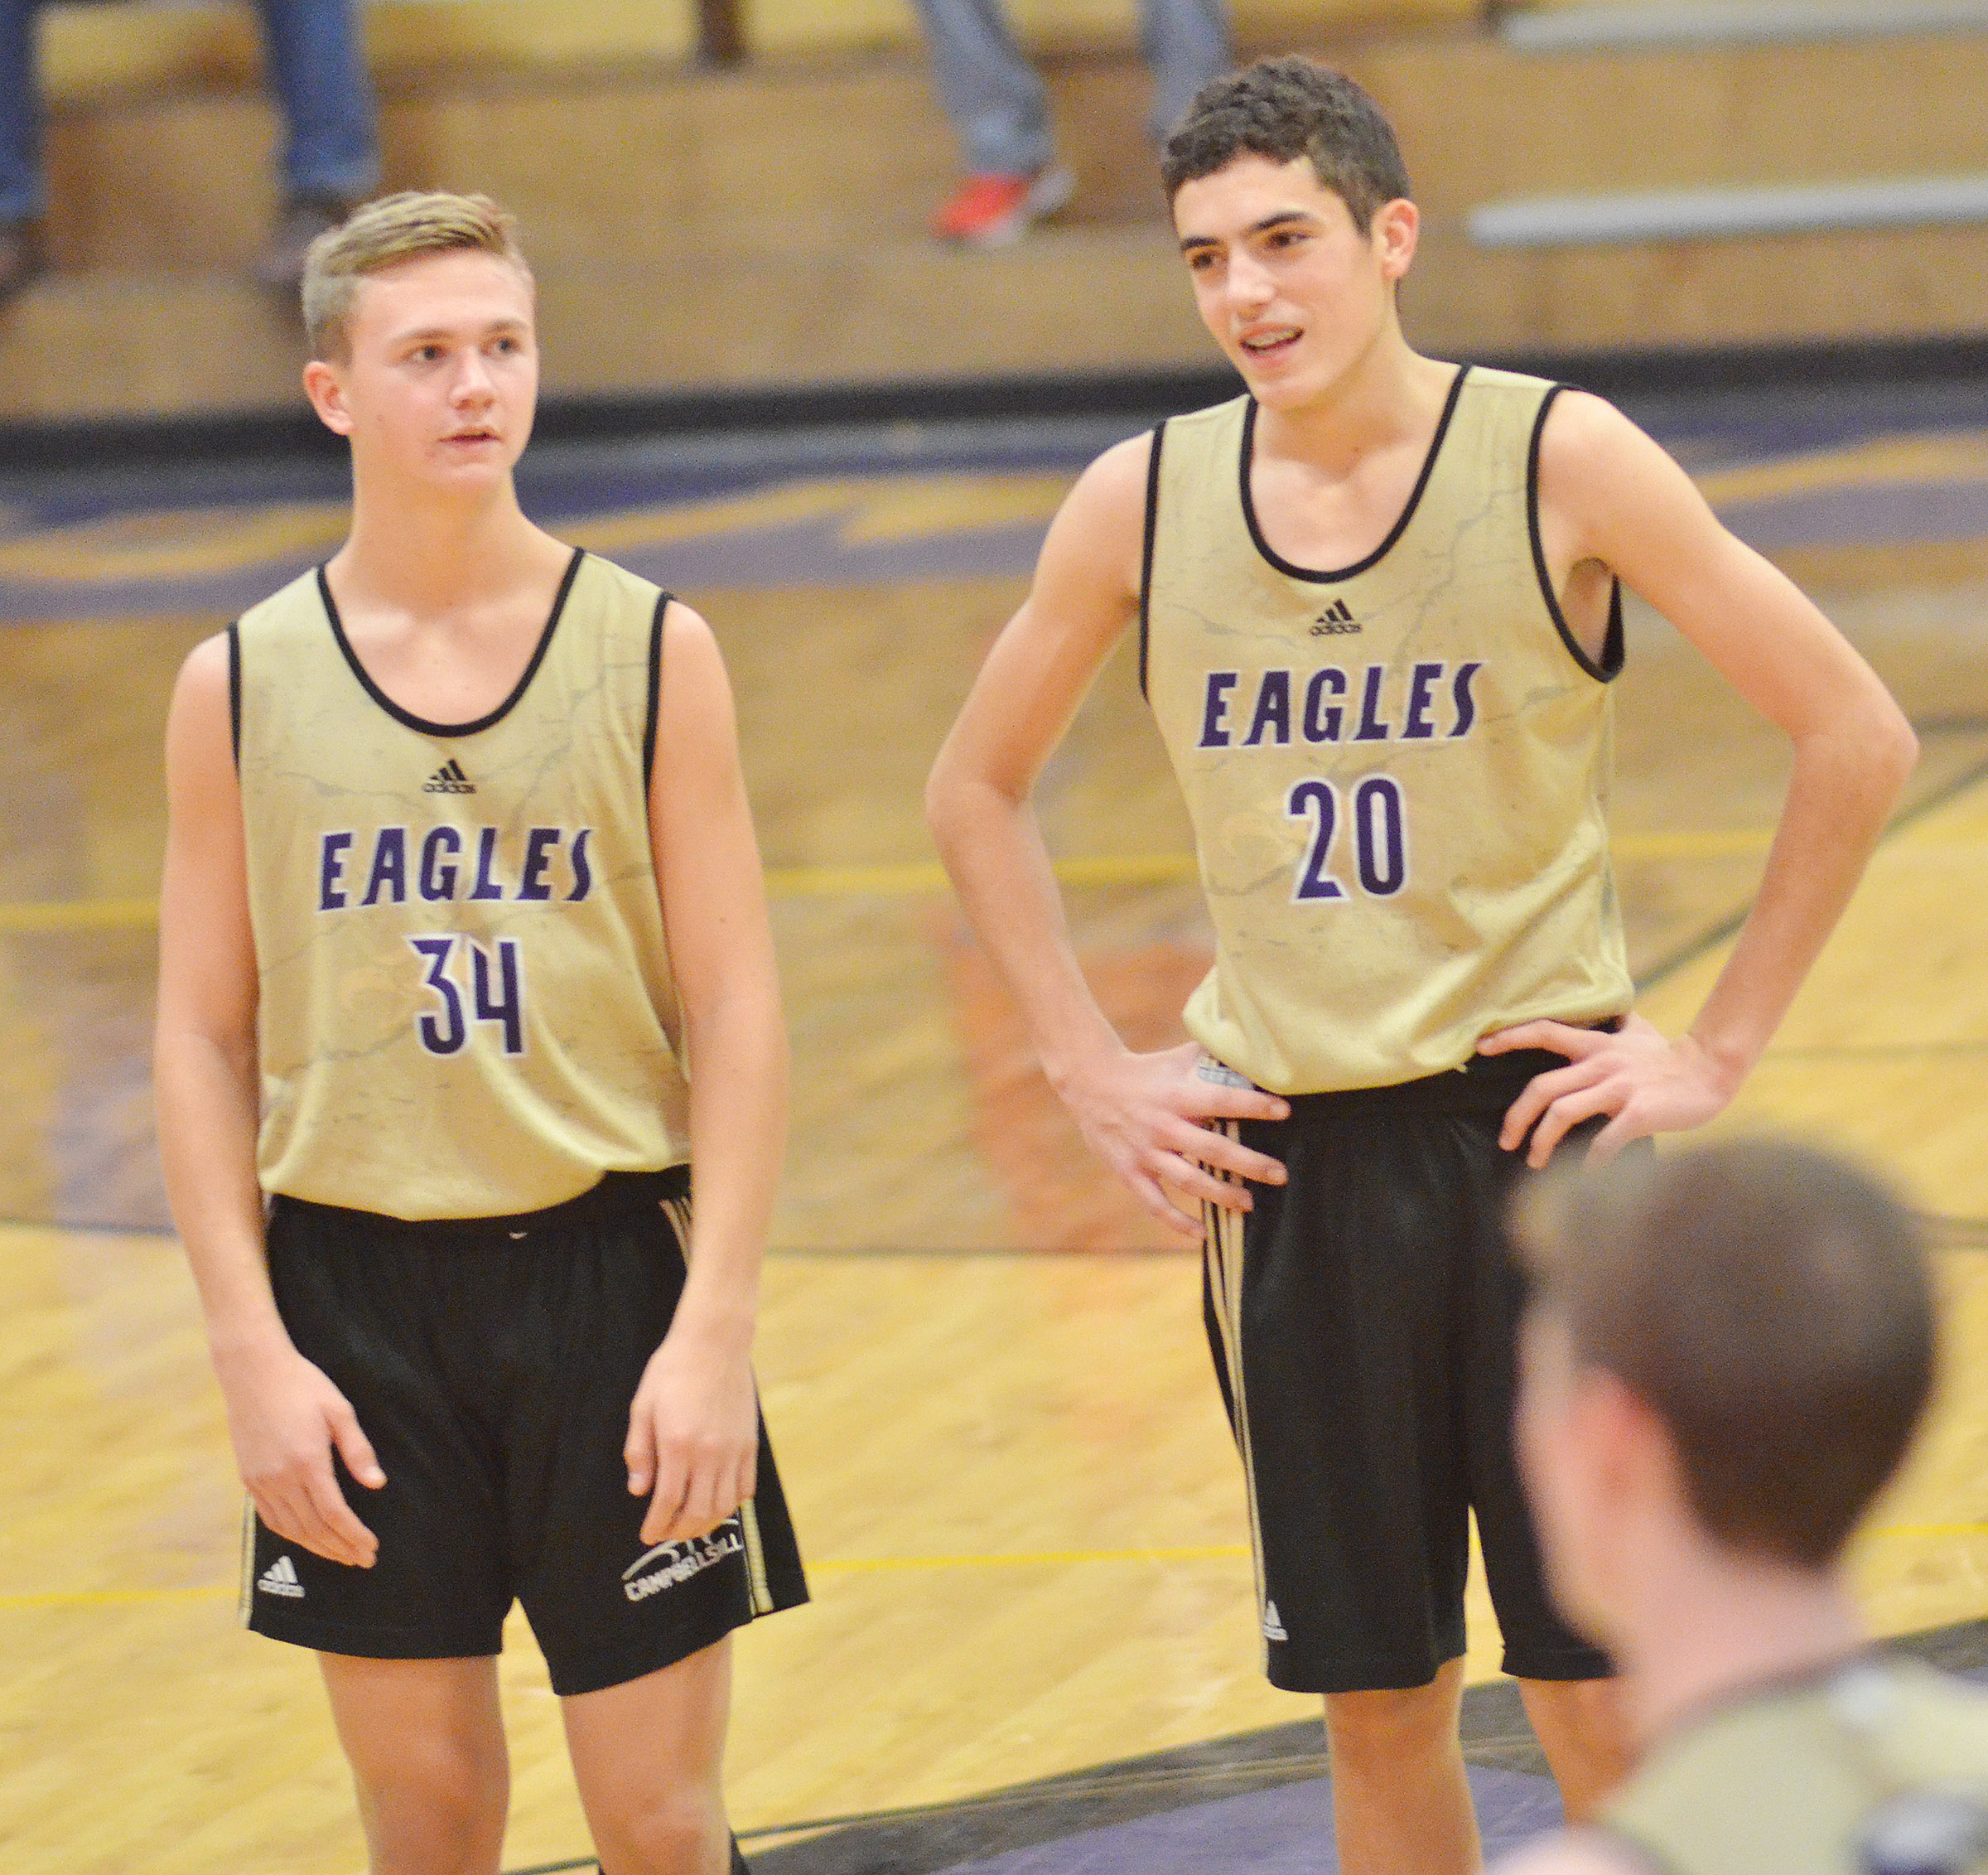 CHS freshmen Blase Wheatley, at left, and Kameron Smith talk.